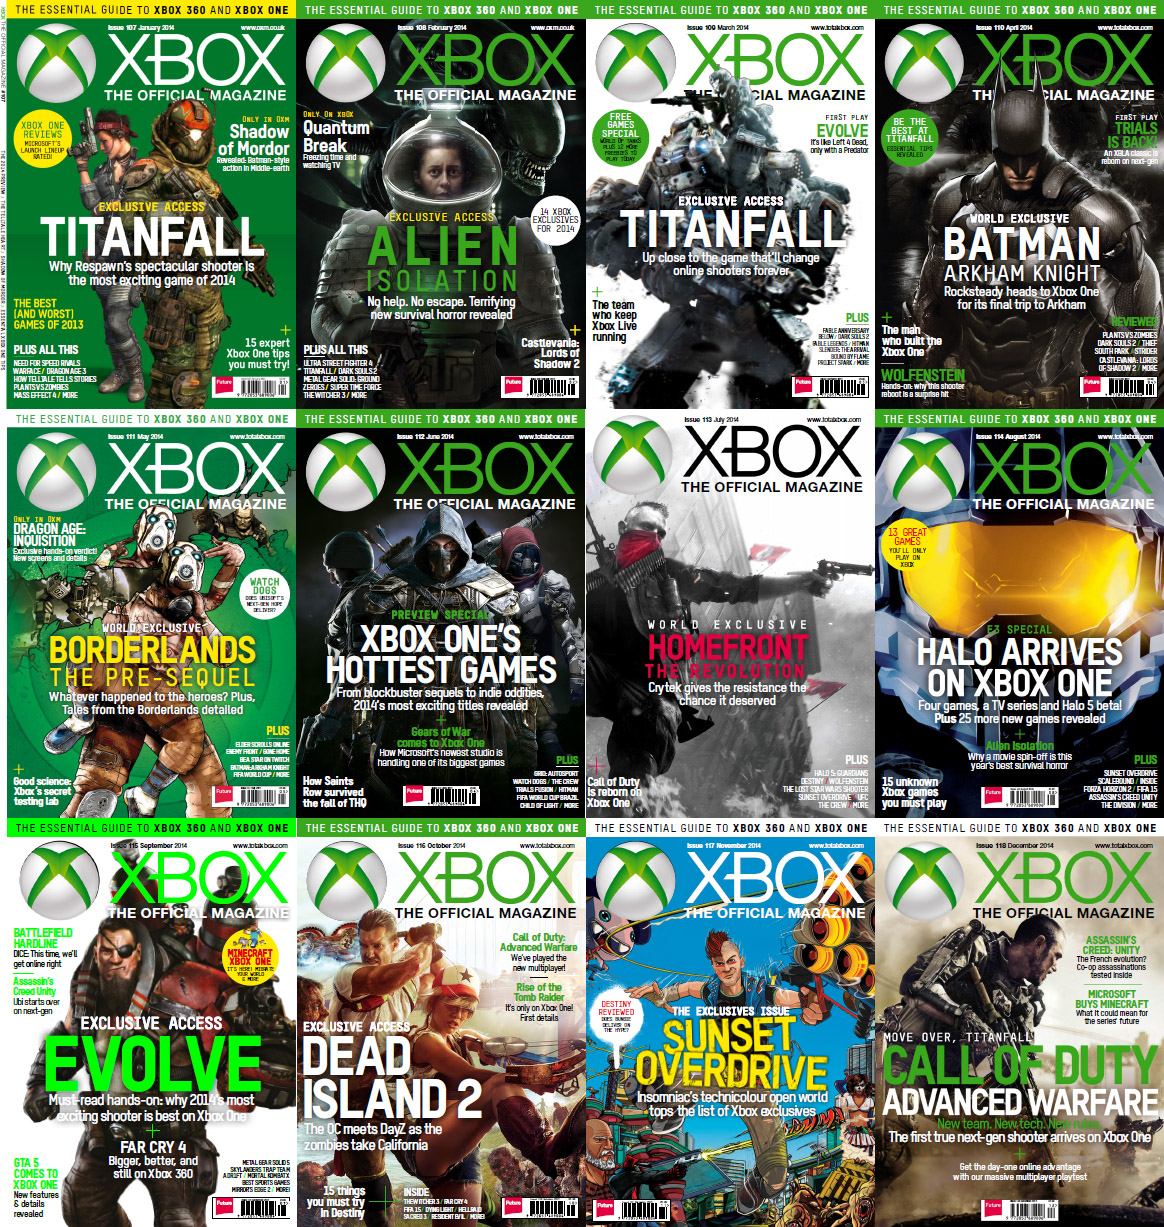 Xbox-The Official Magazine - 2014 Full Year Issues Collection